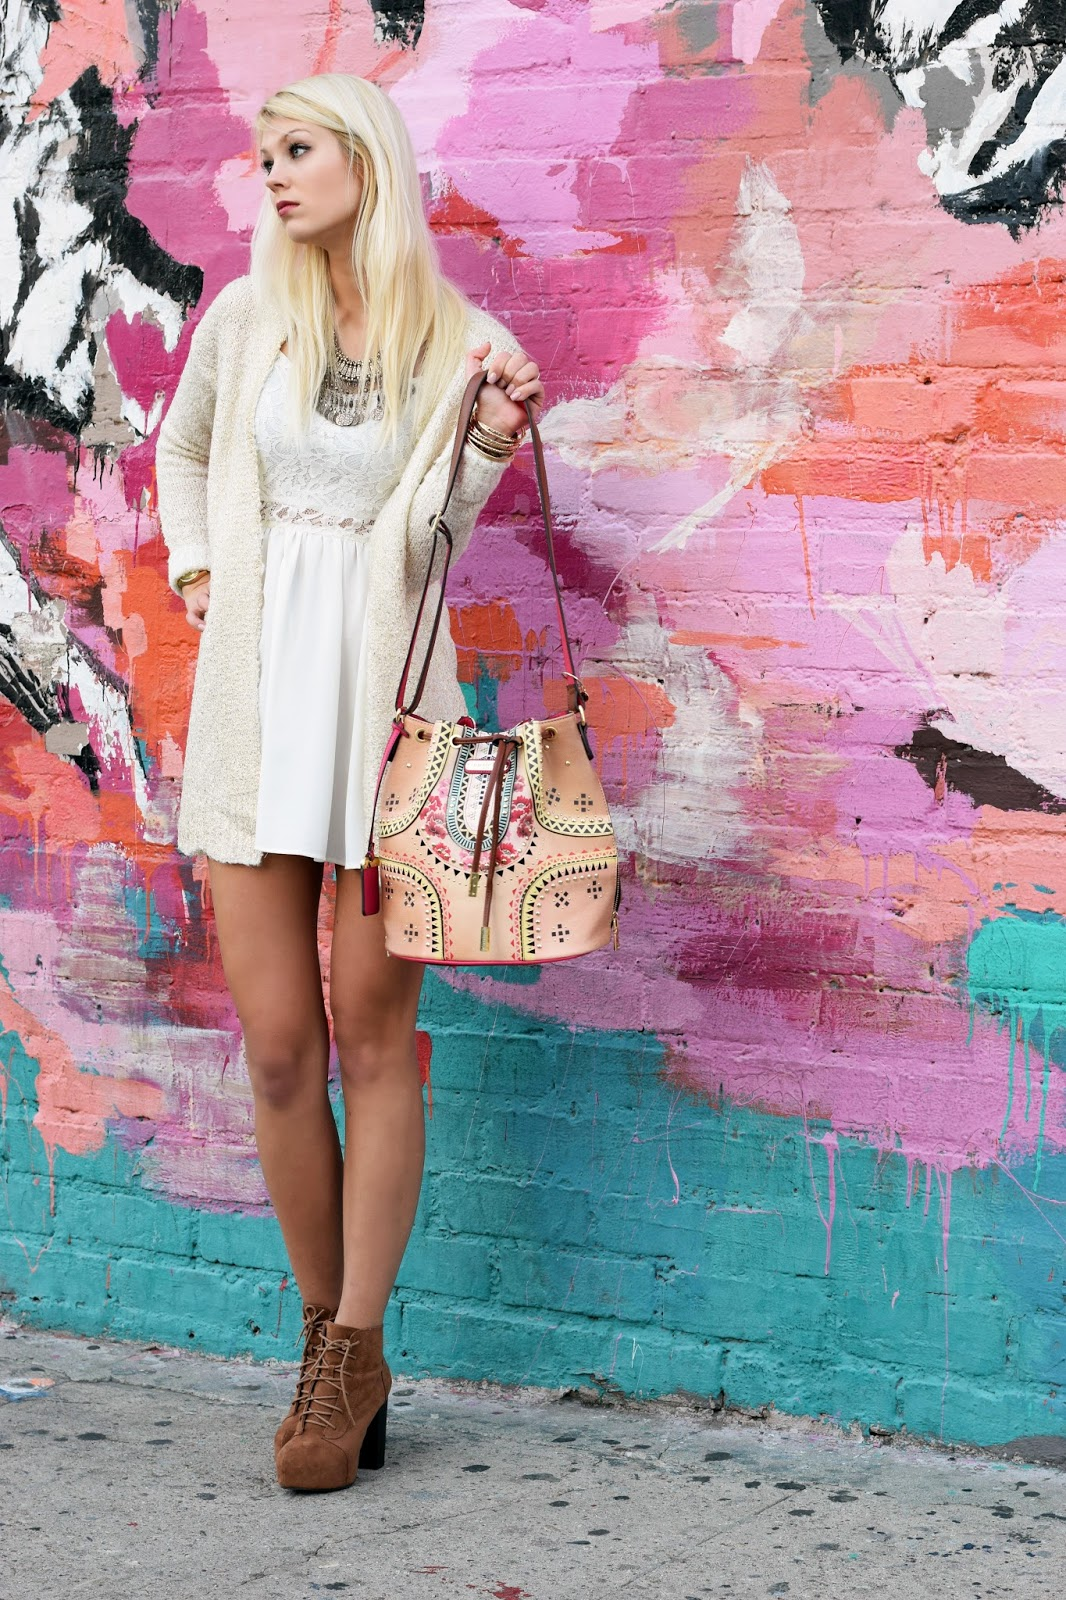 Bucket bag, nicole lee, nicole lee usa, bohemian, boho chic, lace dress, gold cardigan, arts district